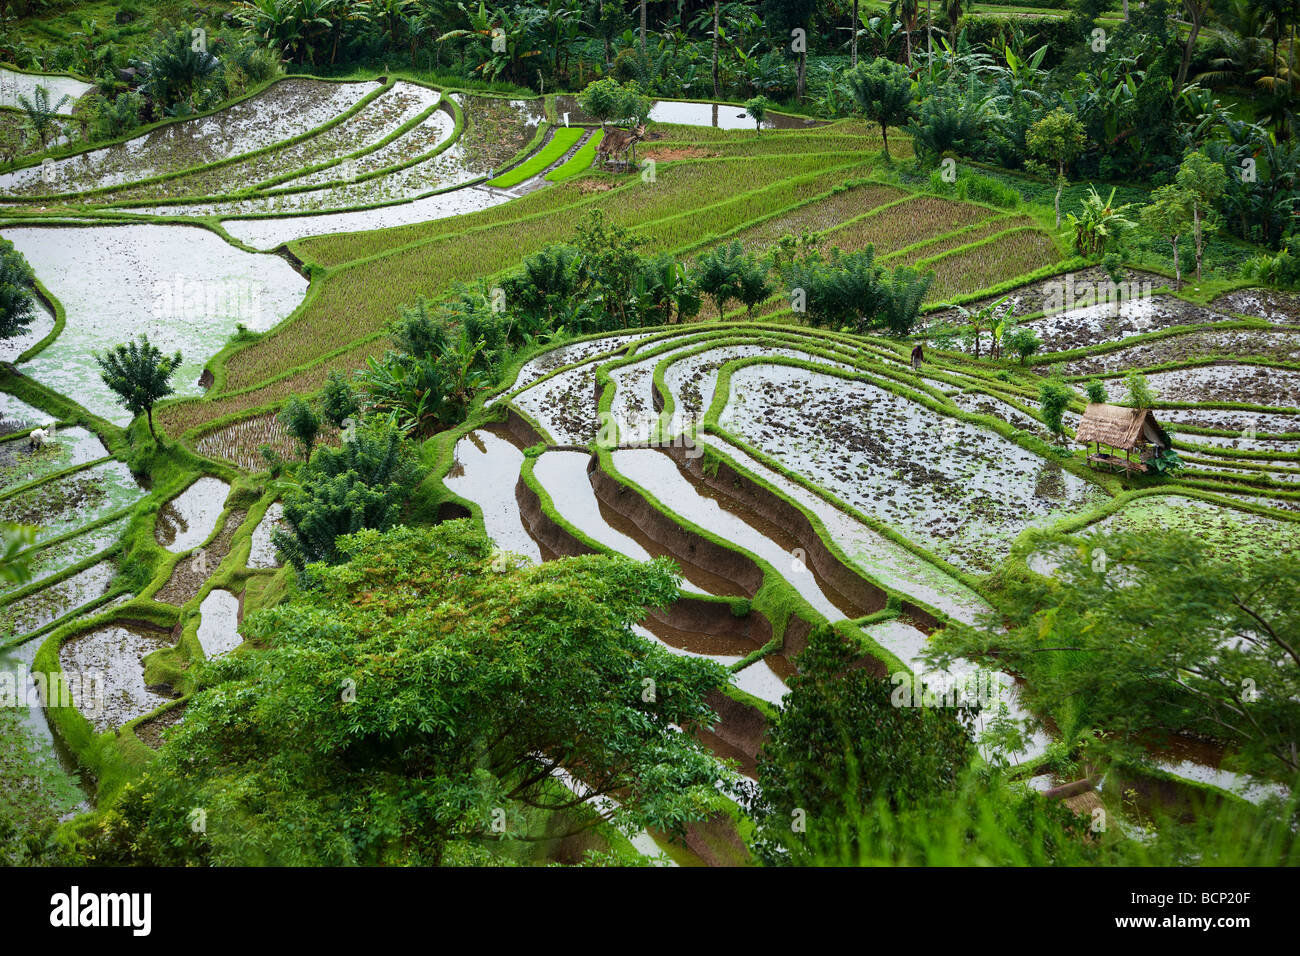 rice terraces, nr Tirtagangga, Bali, Indonesia - Stock Image